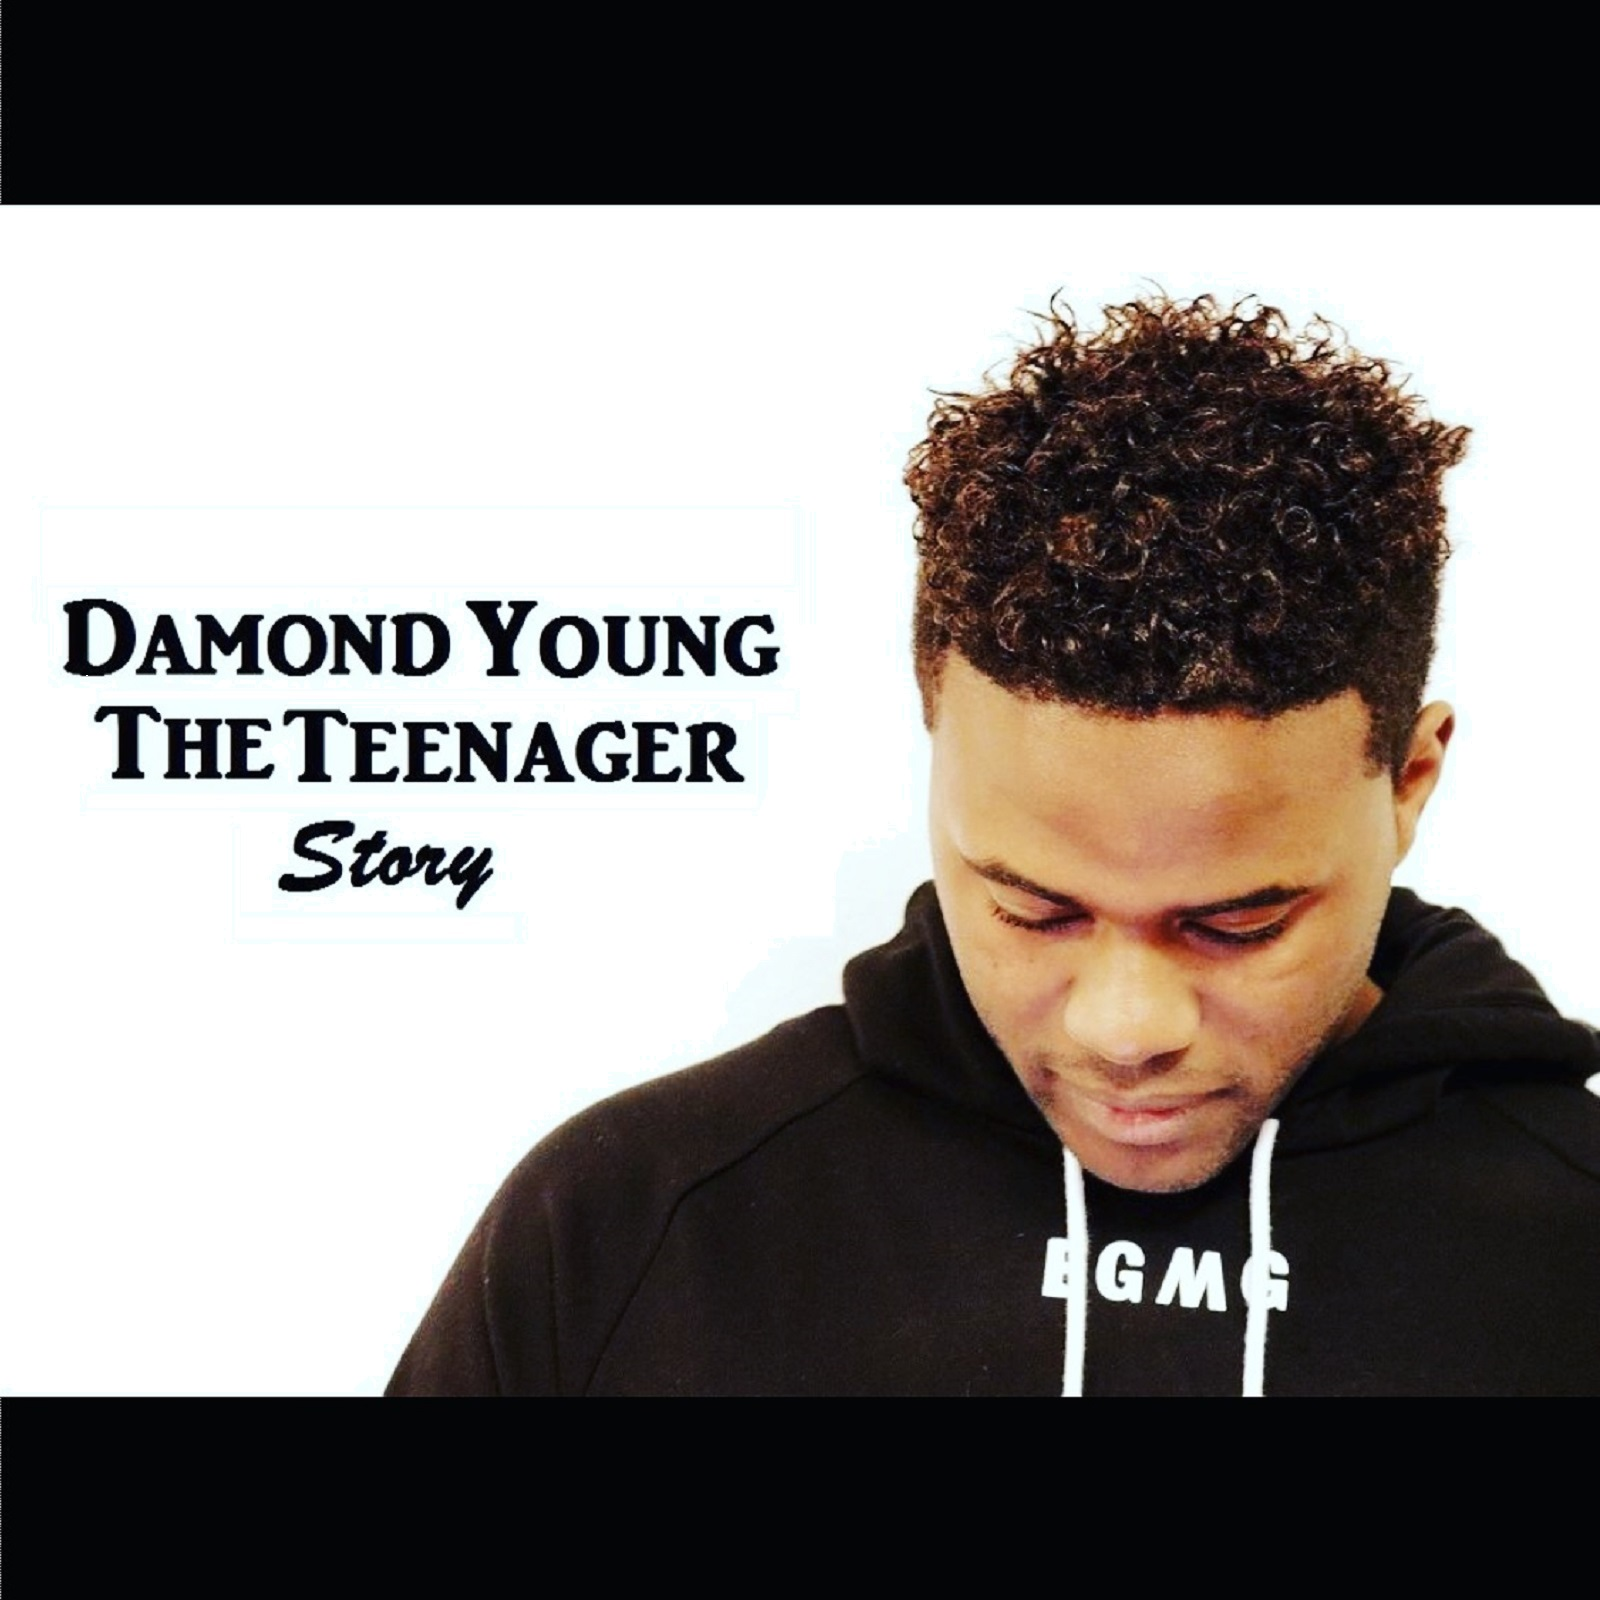 """Fans far and wide are patiently waiting for Damond to drop his third album called """"Damond Young the  Teenager Story"""". On April Sixteenth Two Thousand and Seventeen This album will take you through a  spiritual journey through Damond teenage years in New Orleans Louisiana. What the over all message of  this album is to making his fans truly understand what AheadofTimeNation stands for. Expressing what it  takes to get to the top, even when facing the worlds positive and negative experiences.  What Damond aims for in this album, to create a unique sound that you, his fans can relate to and most  importantly lyrics that one can truly connect to. His music will make you feel as if you are actually living  in that moment. Getting lost in every single track that he has created for his fans, family, and friends.          Through the Lord all dreams are met."""